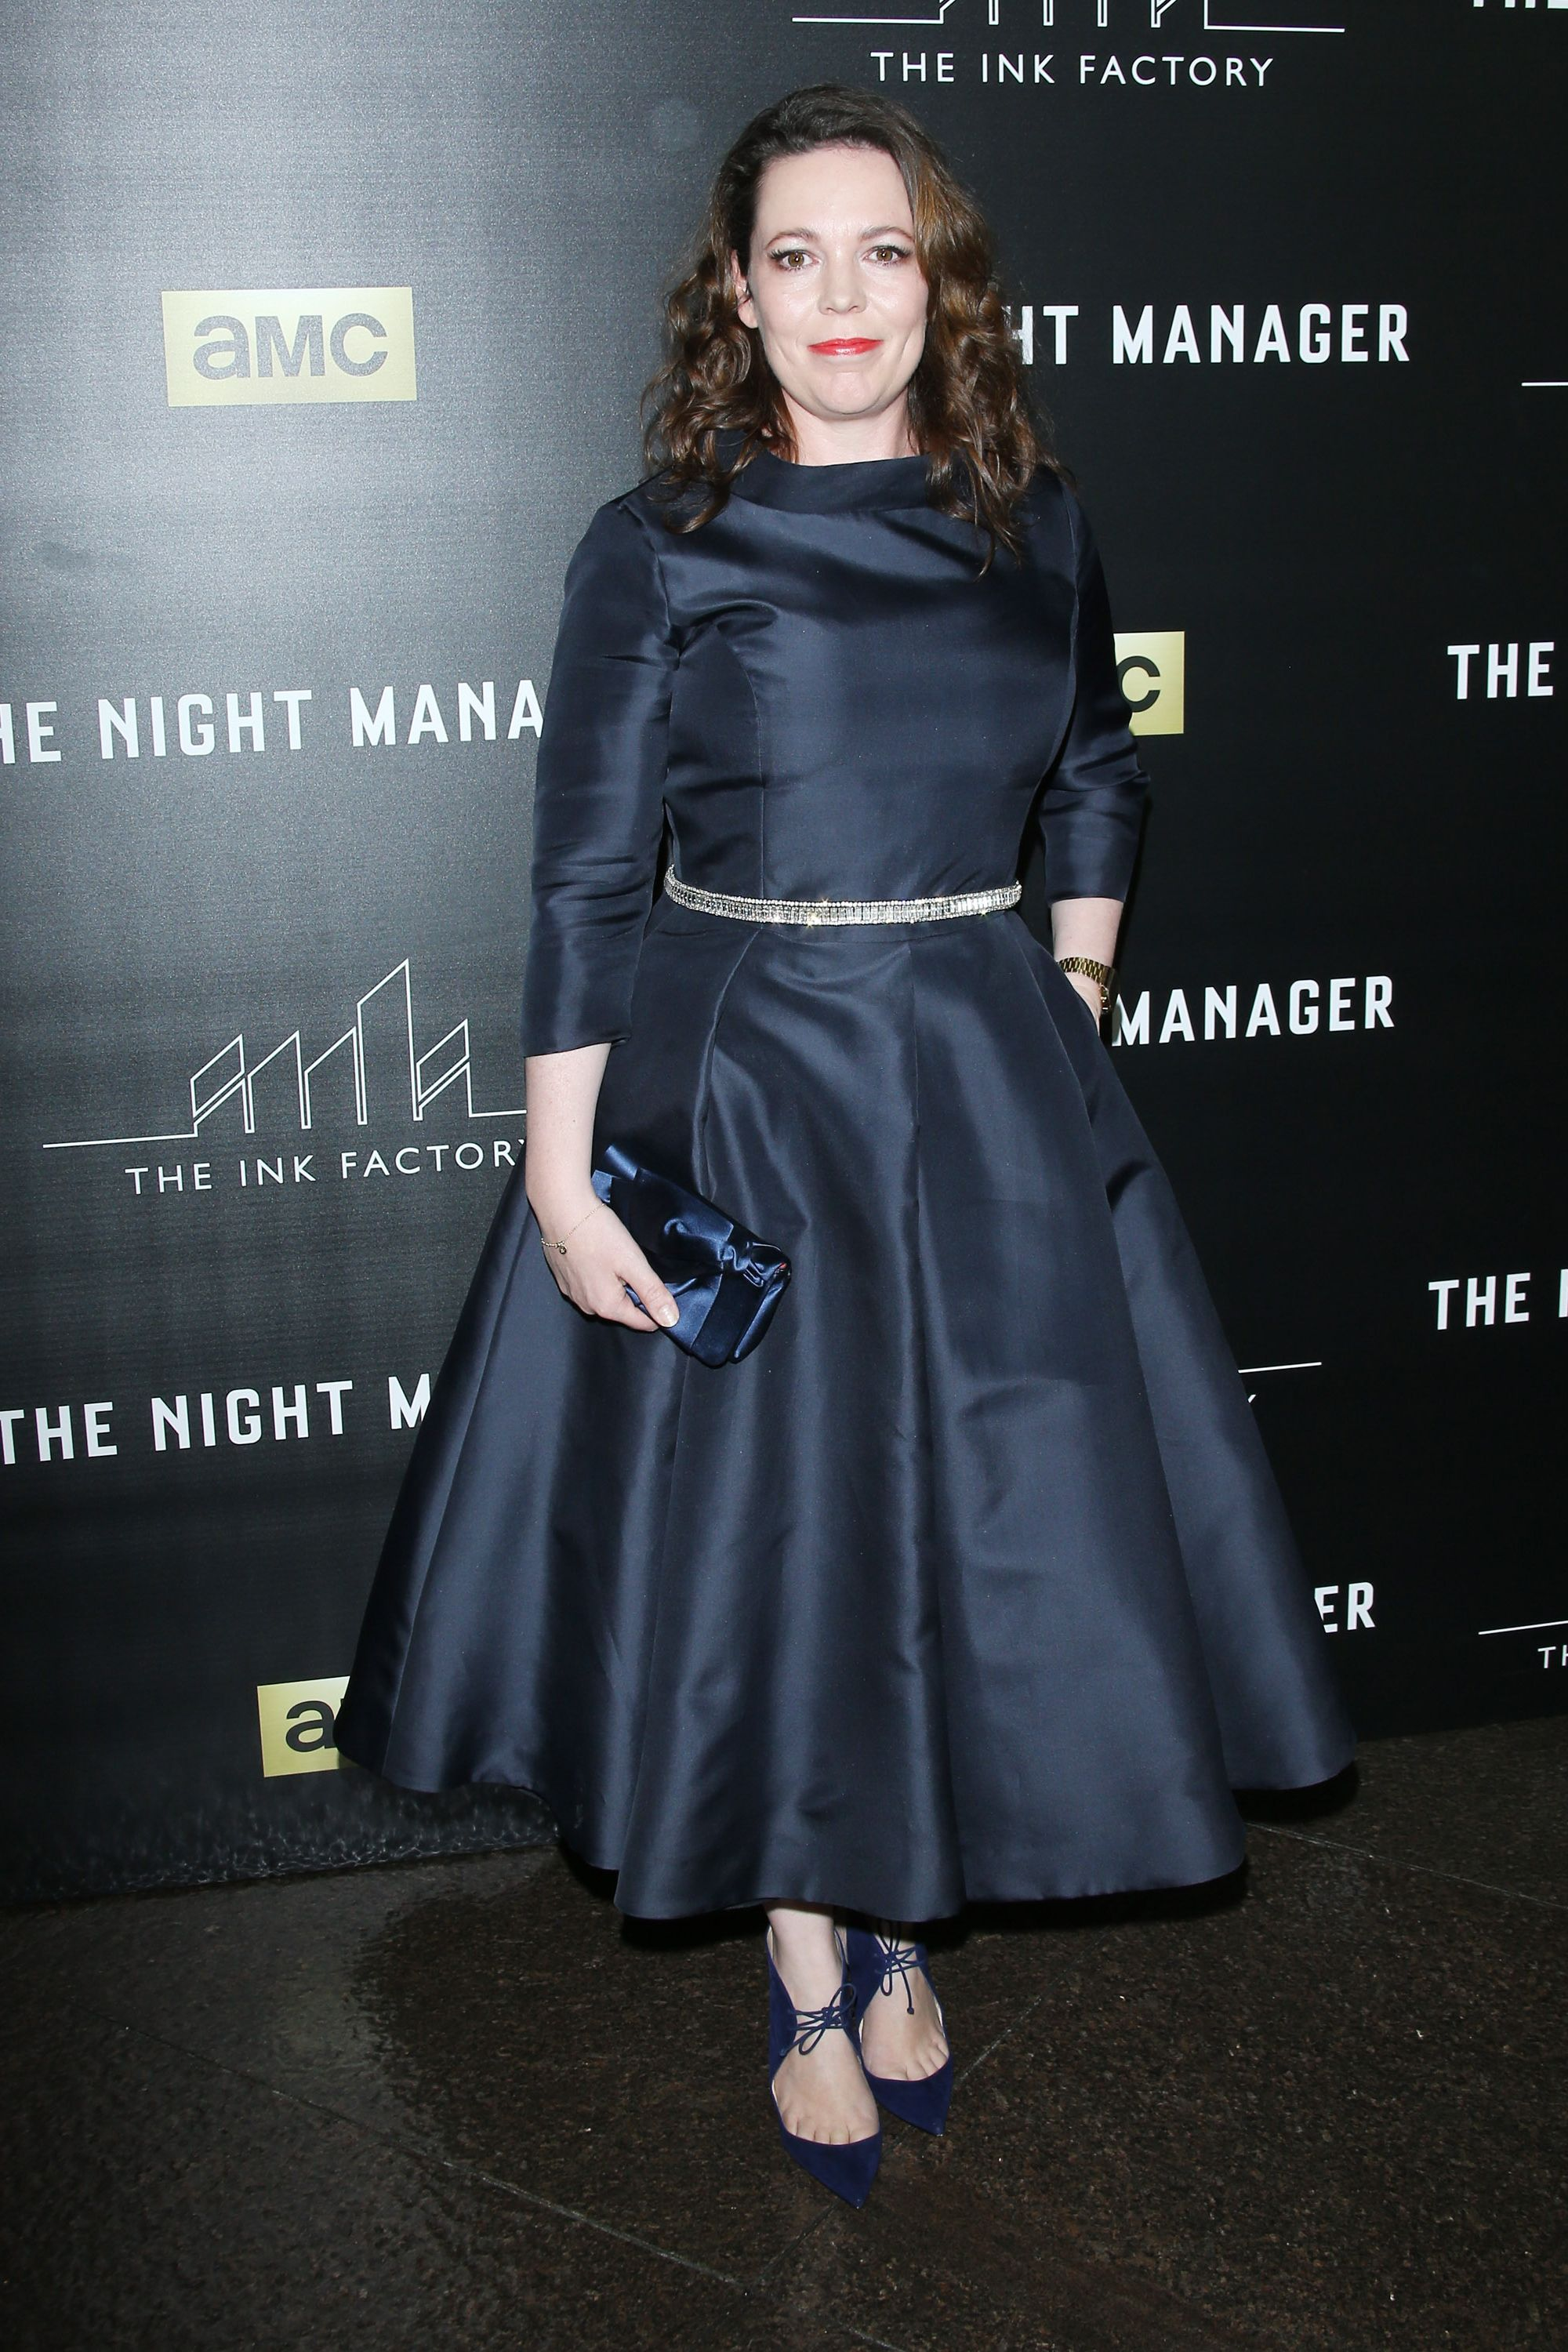 At the premiere of The Night Manager , Colman opted for a navy tea-length dress with a silver belt and dark blue accessories.